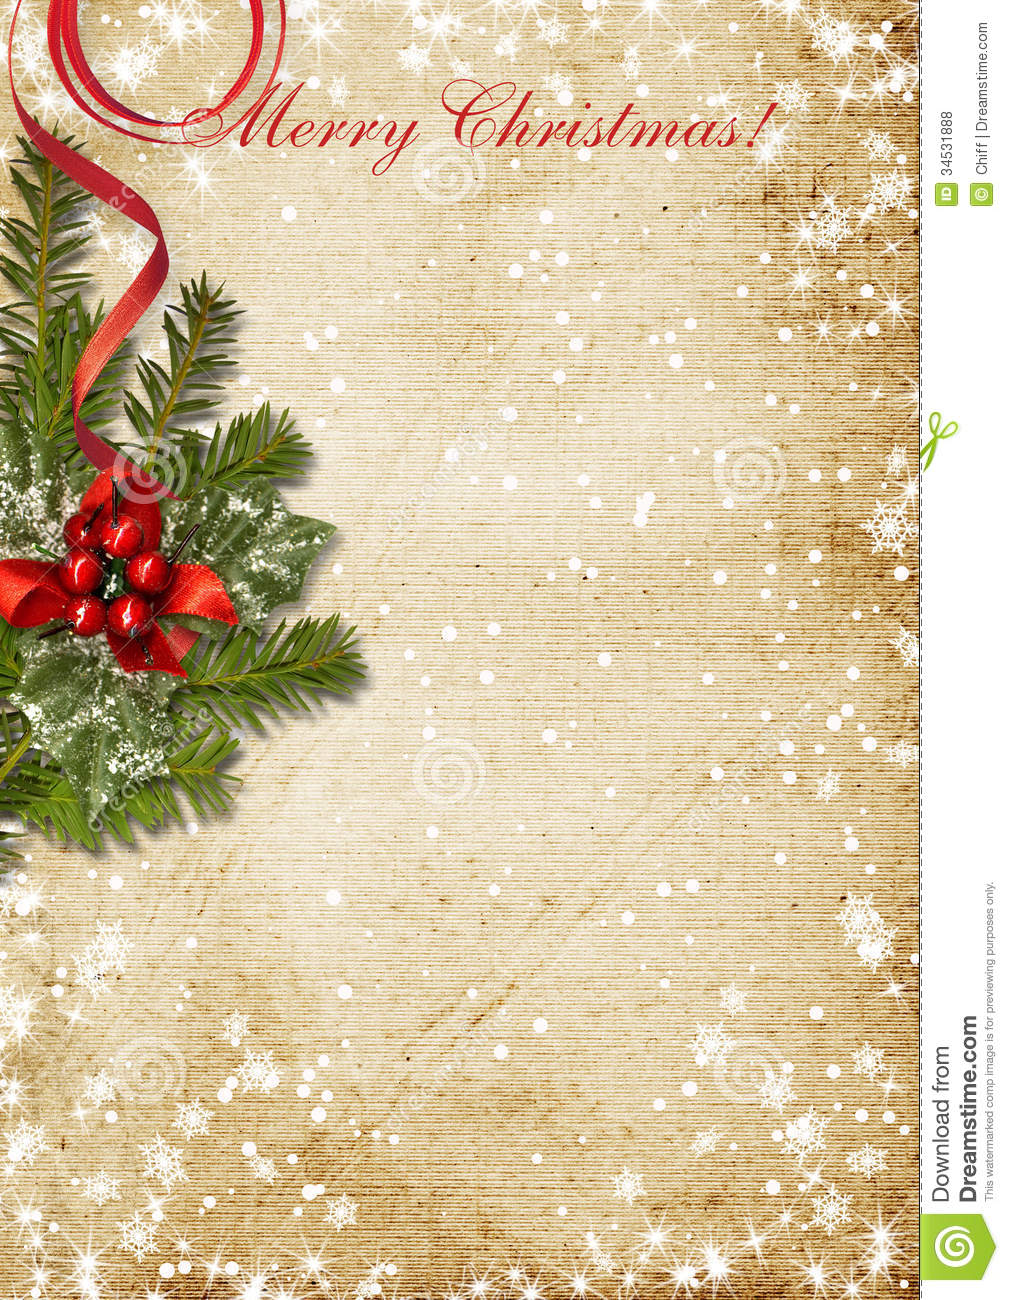 Christmas Card Background.Vintage Christmas Card With The Holly Stock Illustration